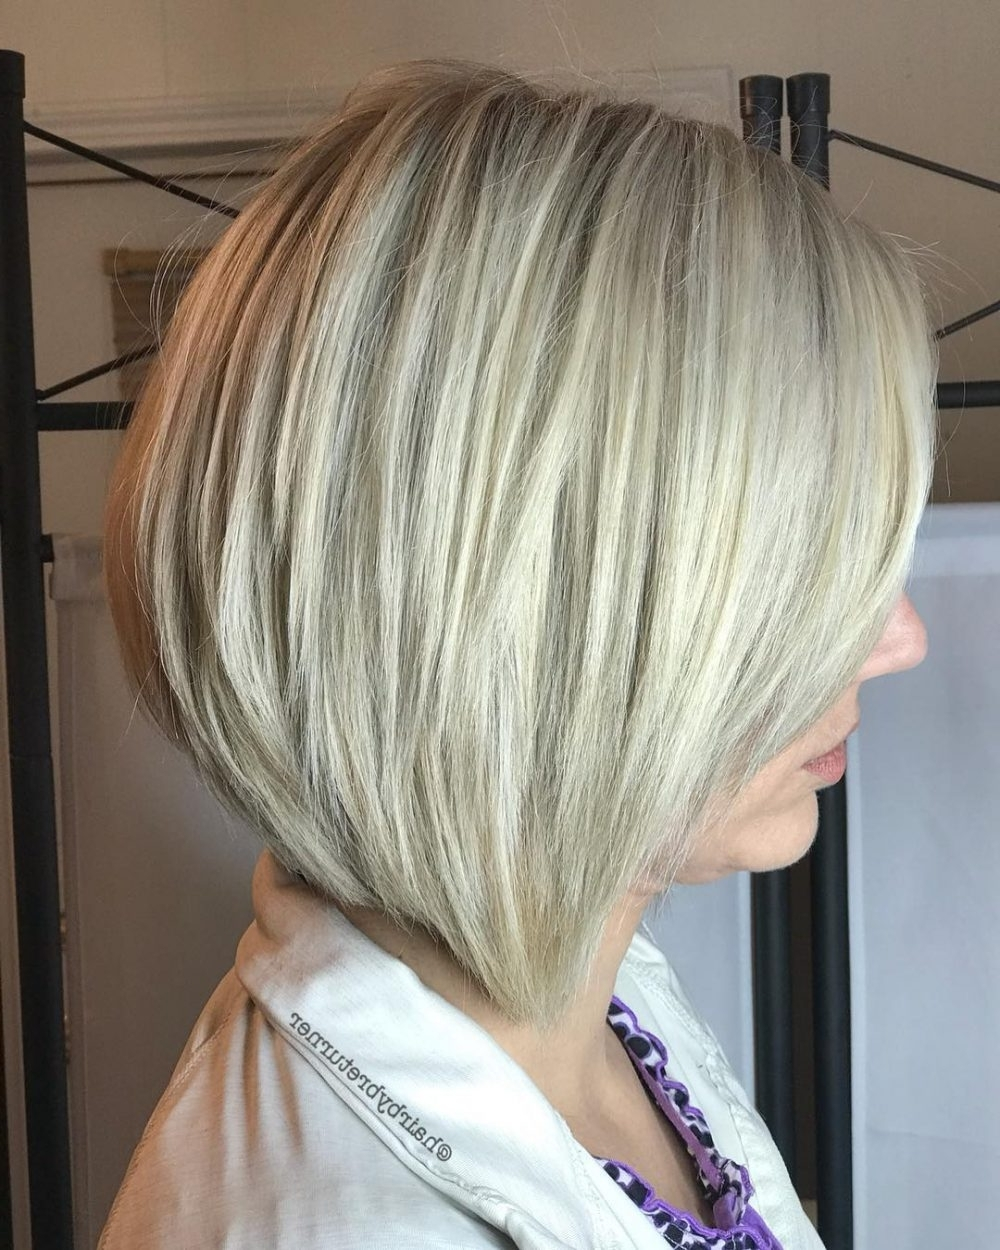 42 Sexiest Short Hairstyles For Women Over 40 In 2021 Medium Length Hairstyles For Over 40S